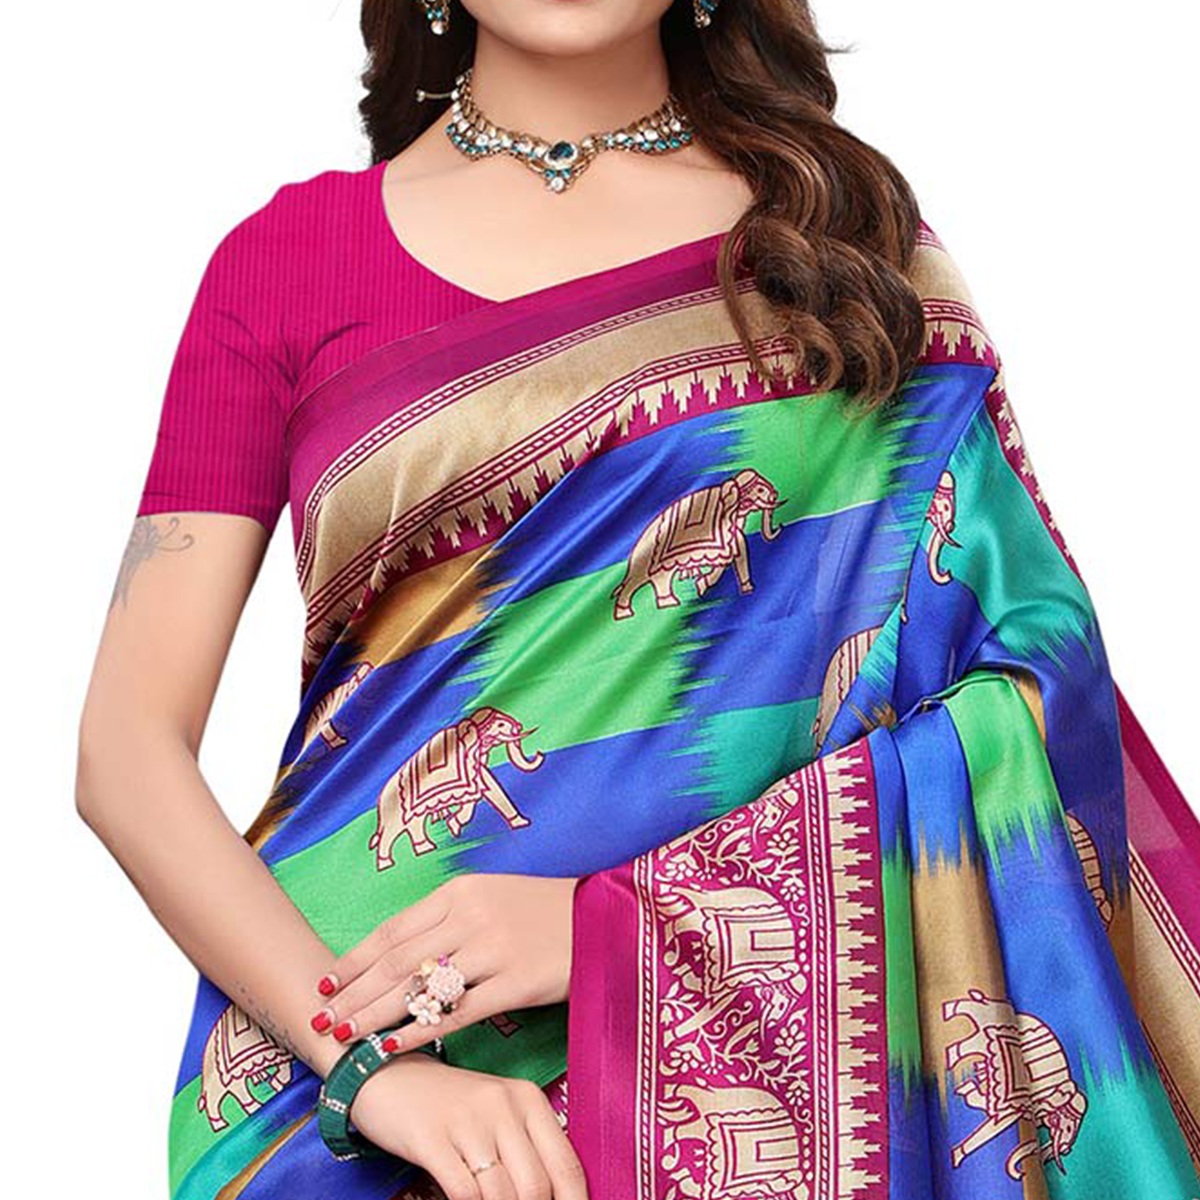 Entrancing Rani Pink - Multi Colored Festive Wear Printed Art Silk Saree With Tassel